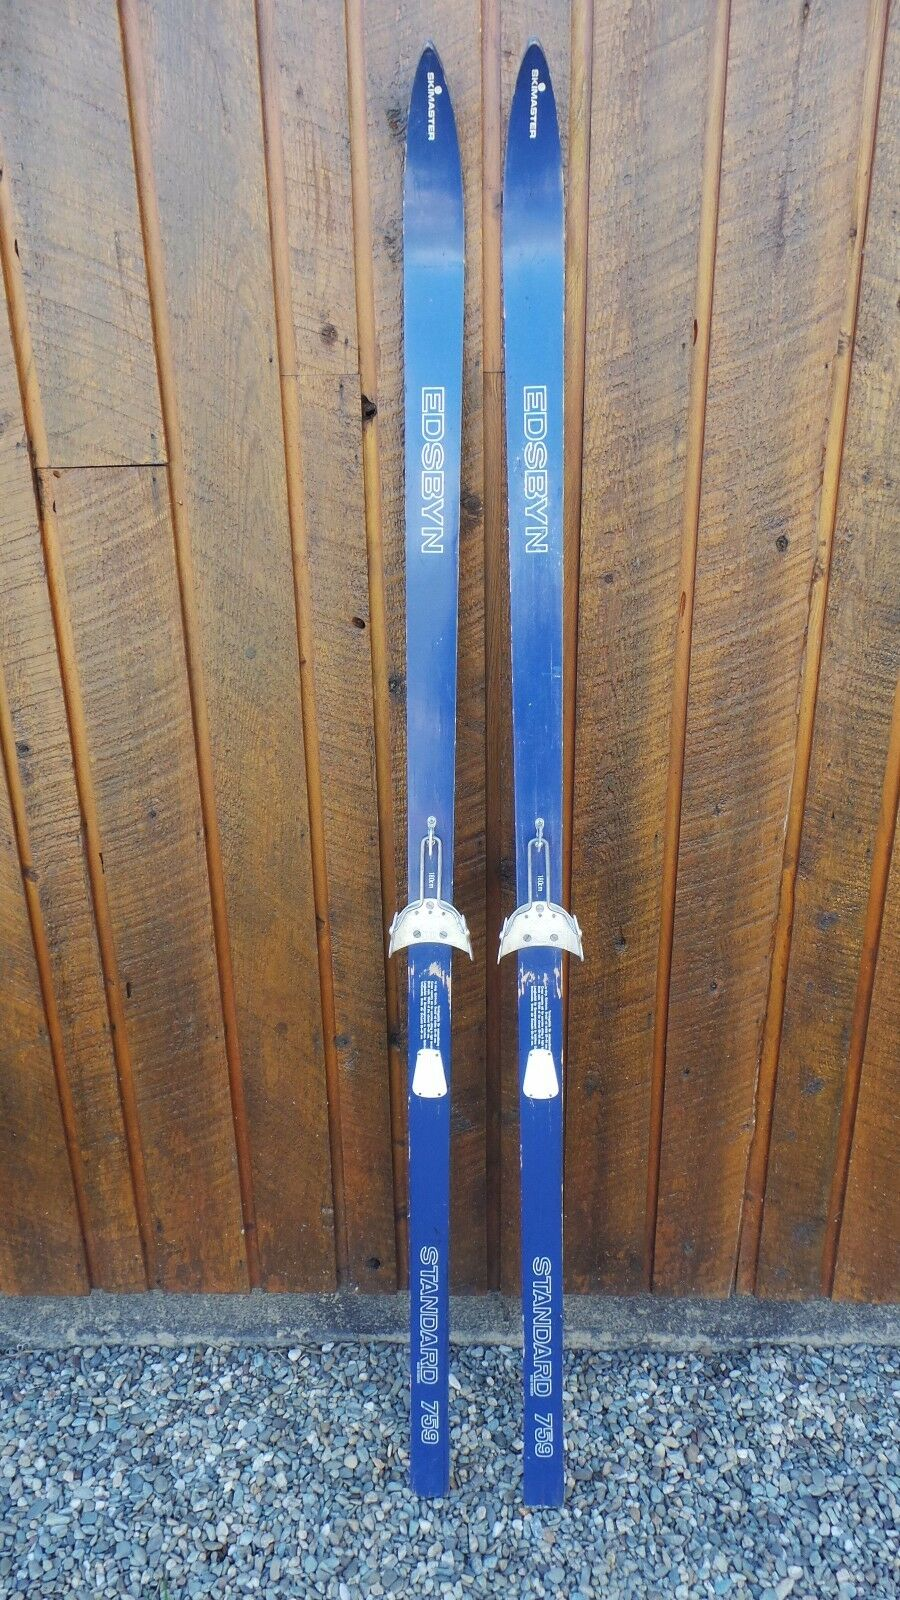 VINTAGE 71  Wooden Skis blueE Finish  with Metal Bindings Signed EDSBYN